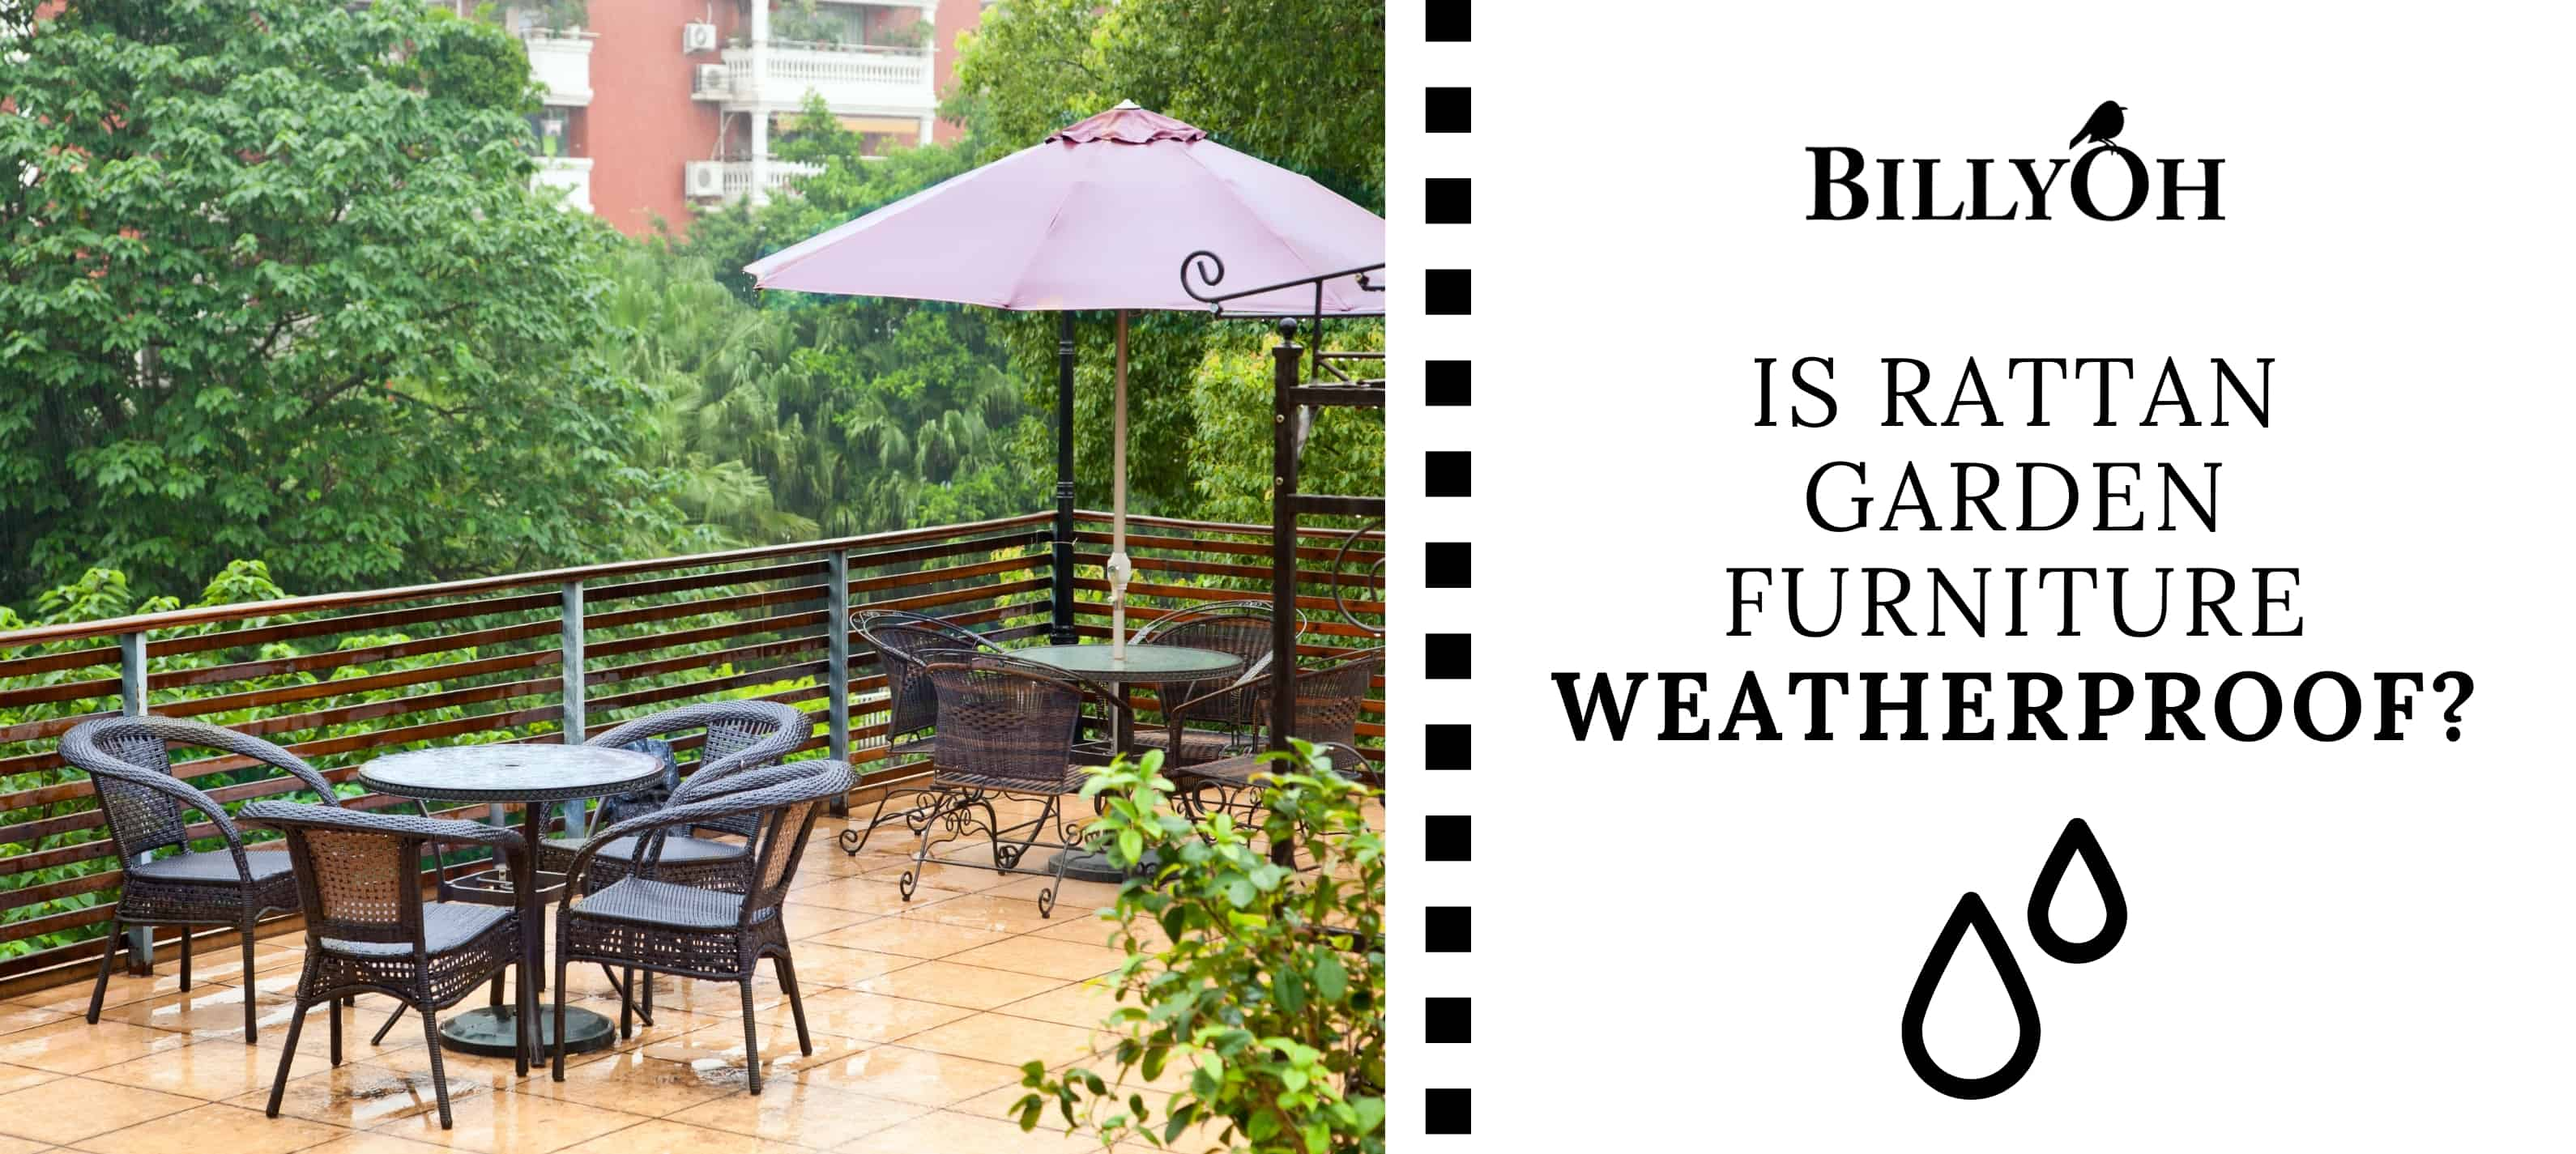 Is Rattan Garden Furniture Weatherproof with BillyOh Black and White cartoon film reel banner and garden furniture outside in the rain